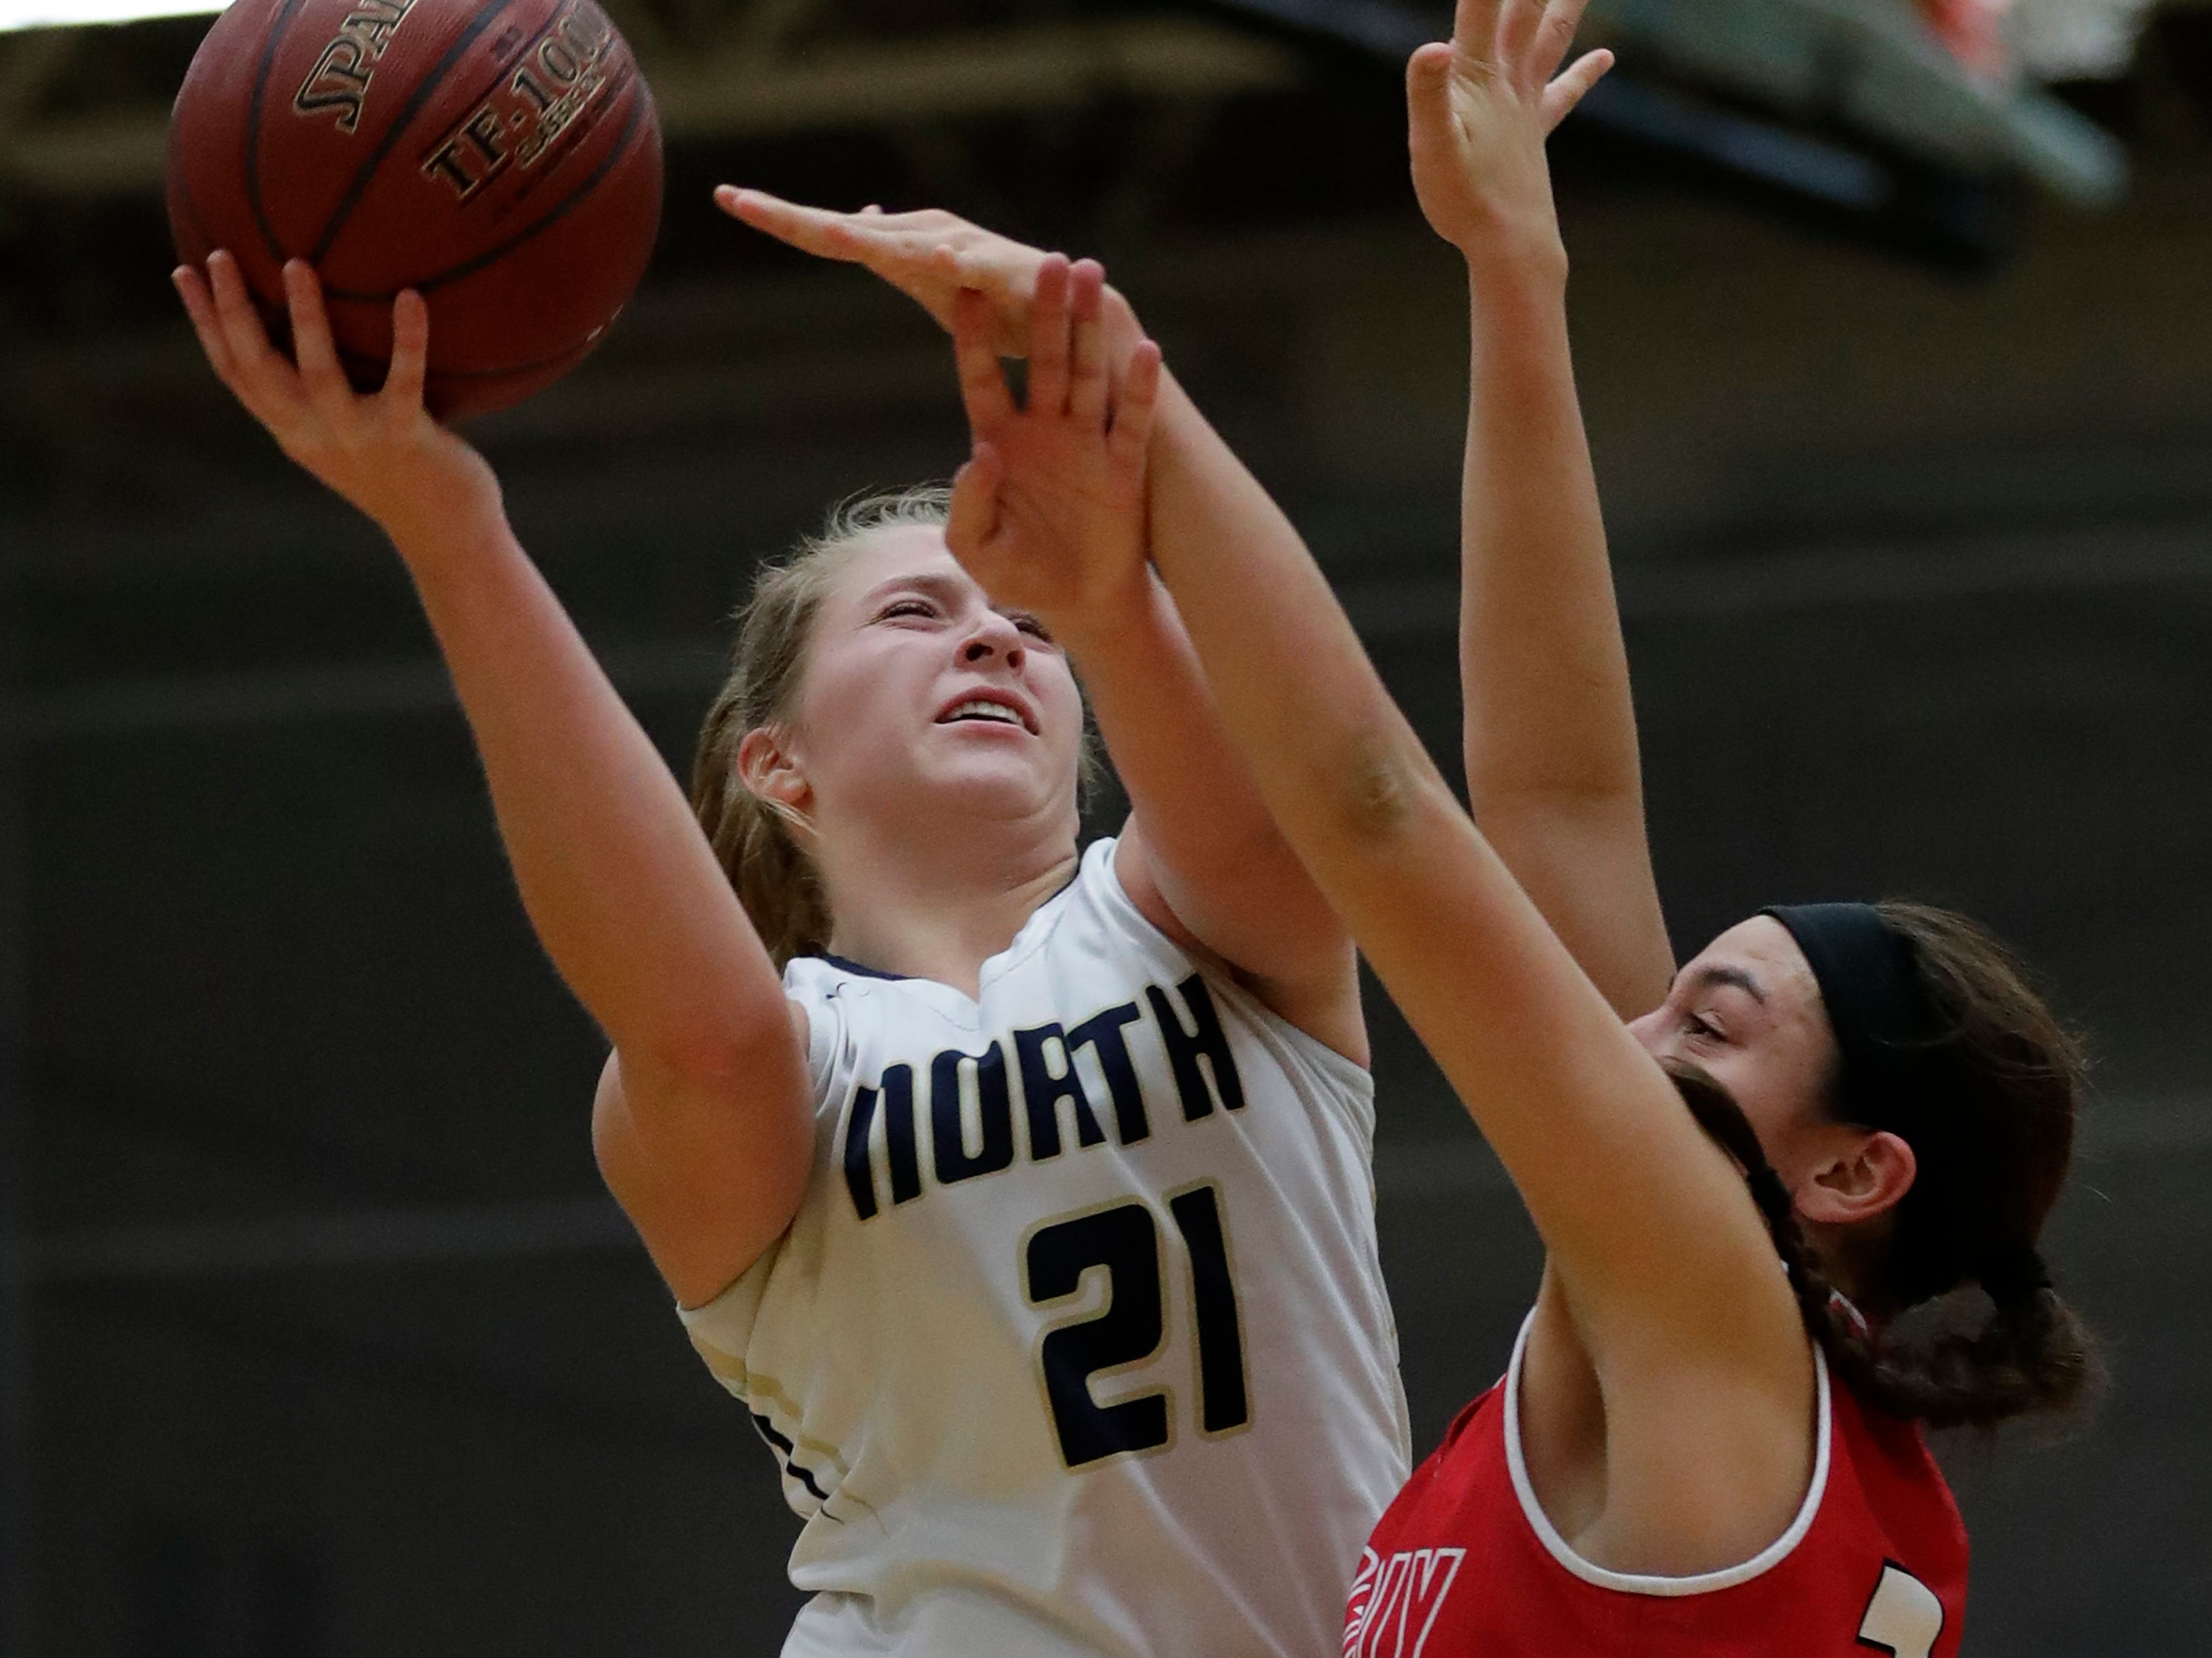 Appleton North High School's Lilli Van Handel (21) puts up a shot against Kimberly High School's Shea Dechant (24) during their girls basketball game Tuesday, January 8, 2019, in Appleton, Wis. Dan Powers/USA TODAY NETWORK-Wisconsin